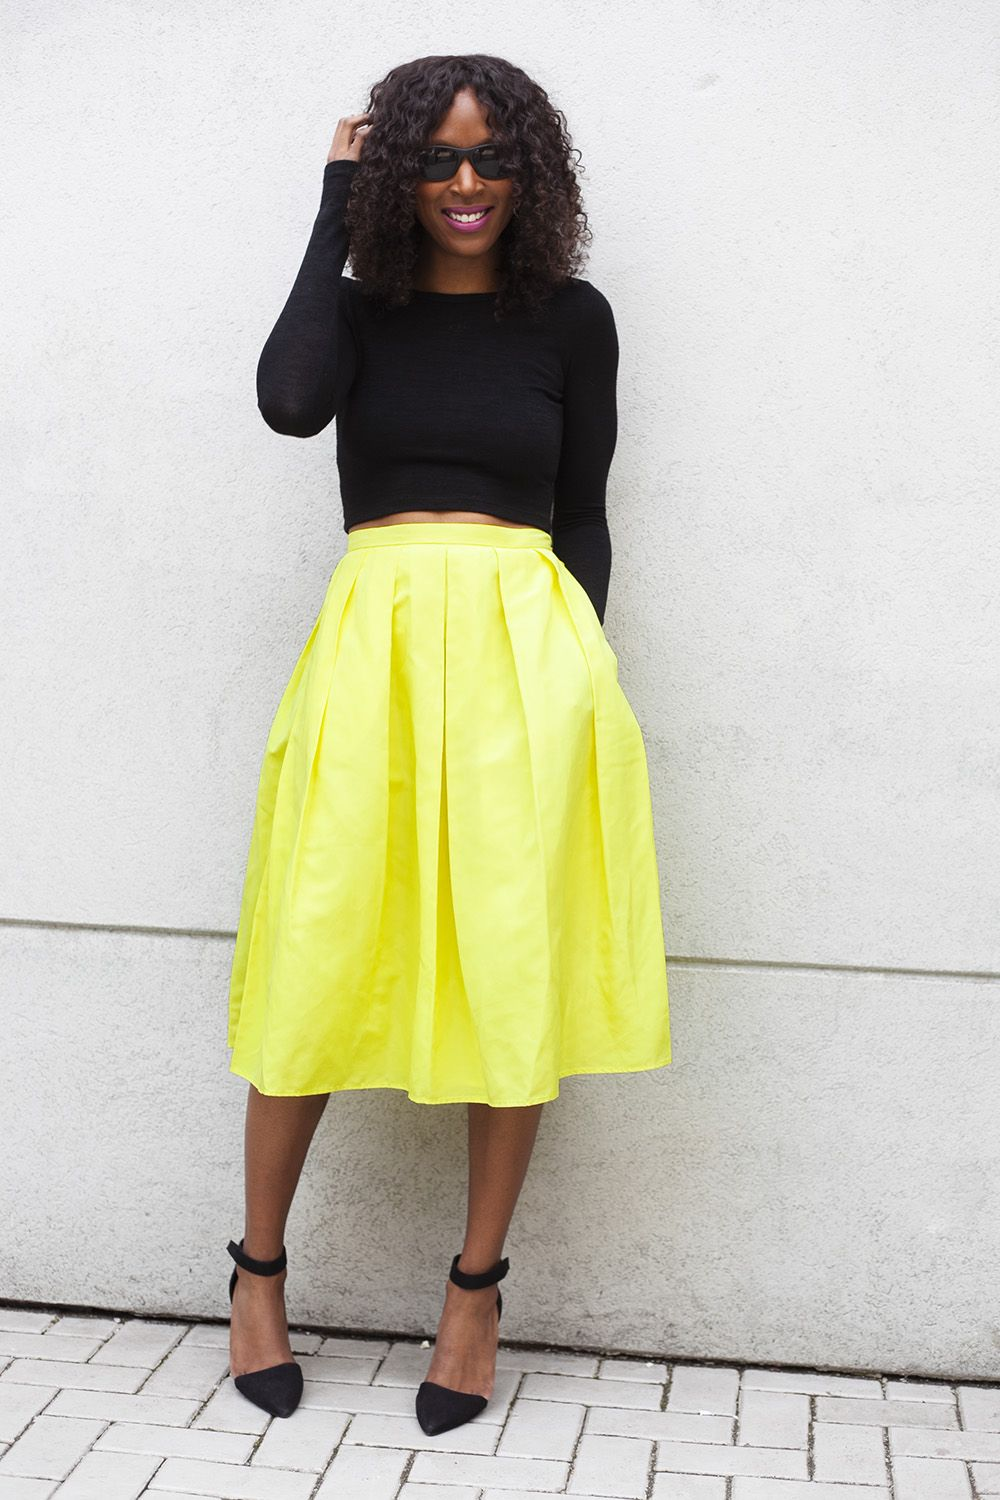 17 Best images about My Love - Midi Skirts on Pinterest | Woman ...